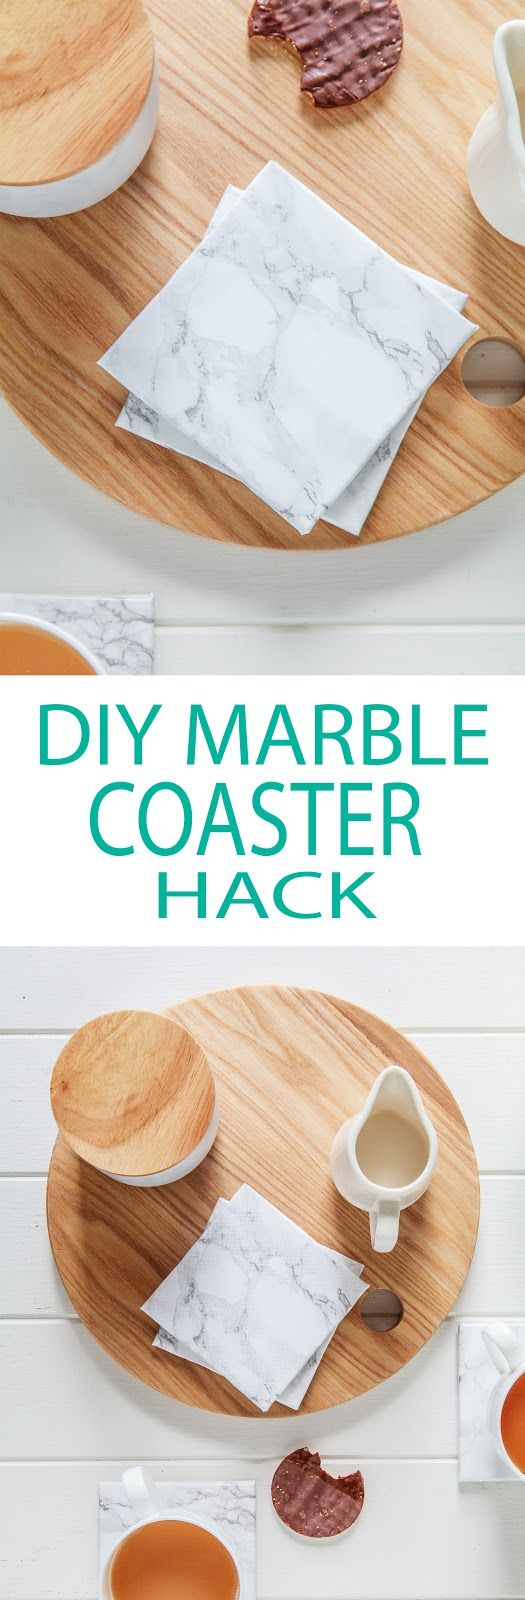 DIY Marble Coaster Hack & Video   The Whimsical Wife